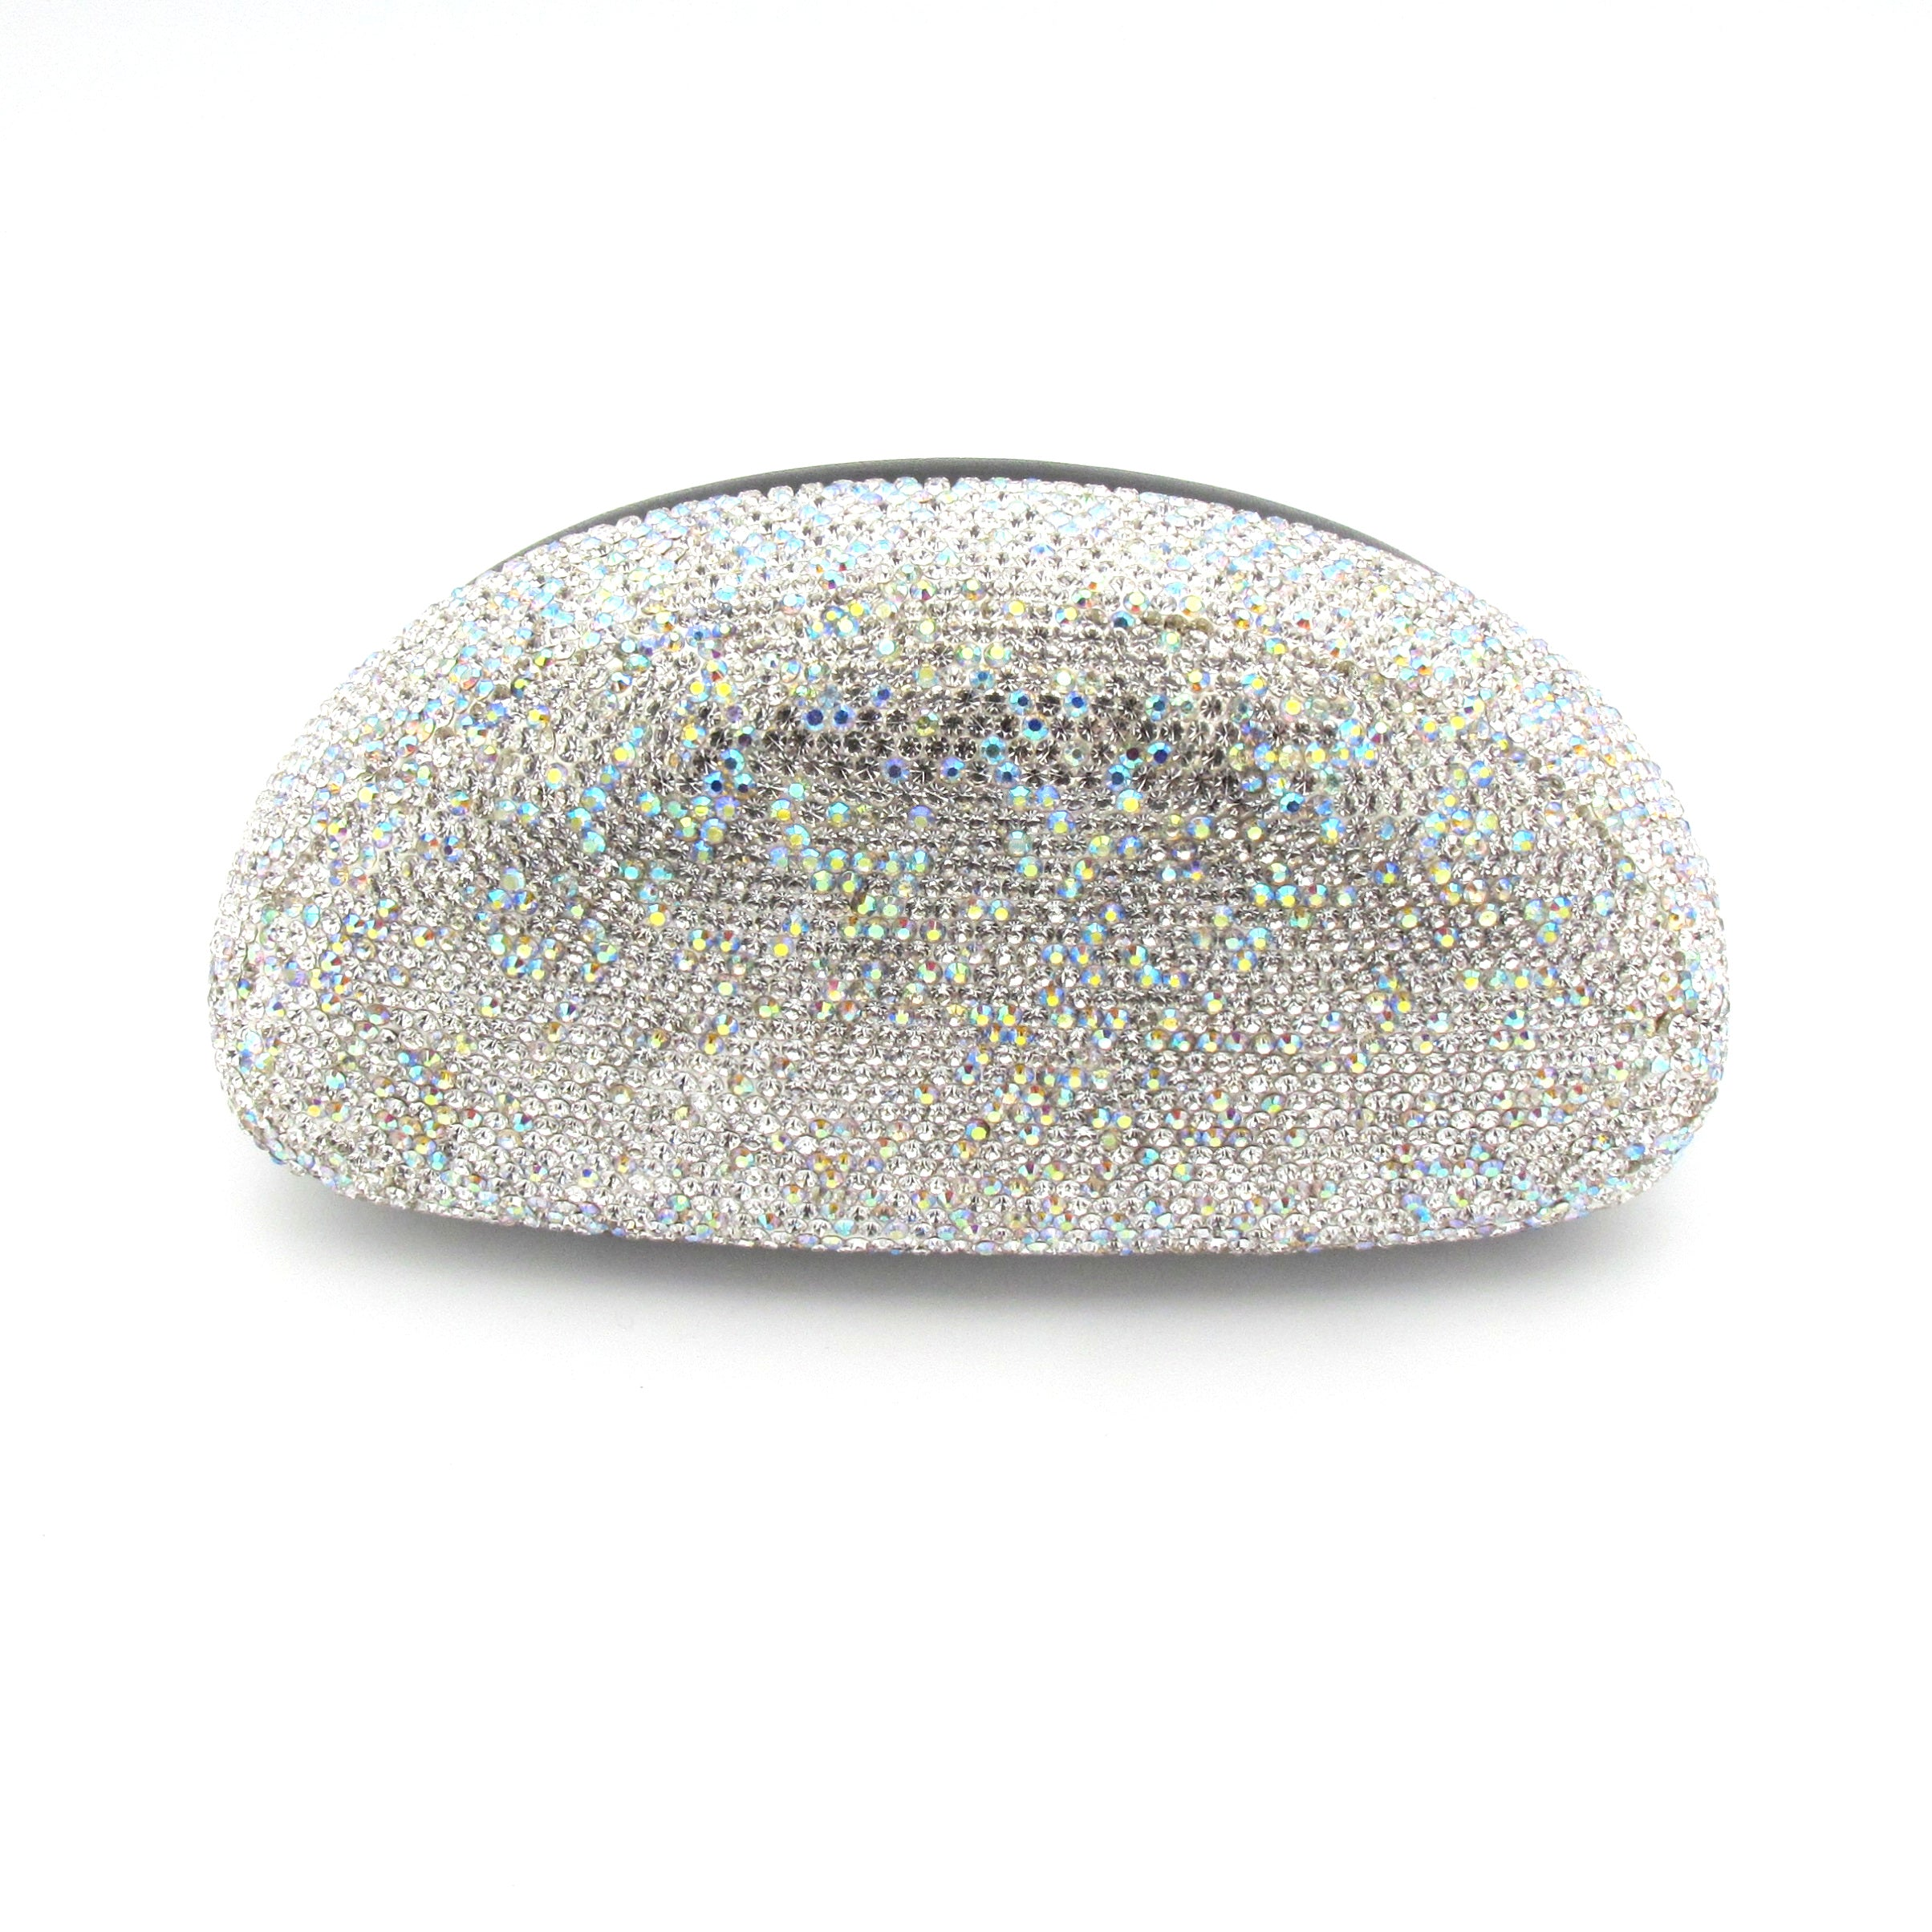 Handcraft  Rhinestone Sunglasses Case